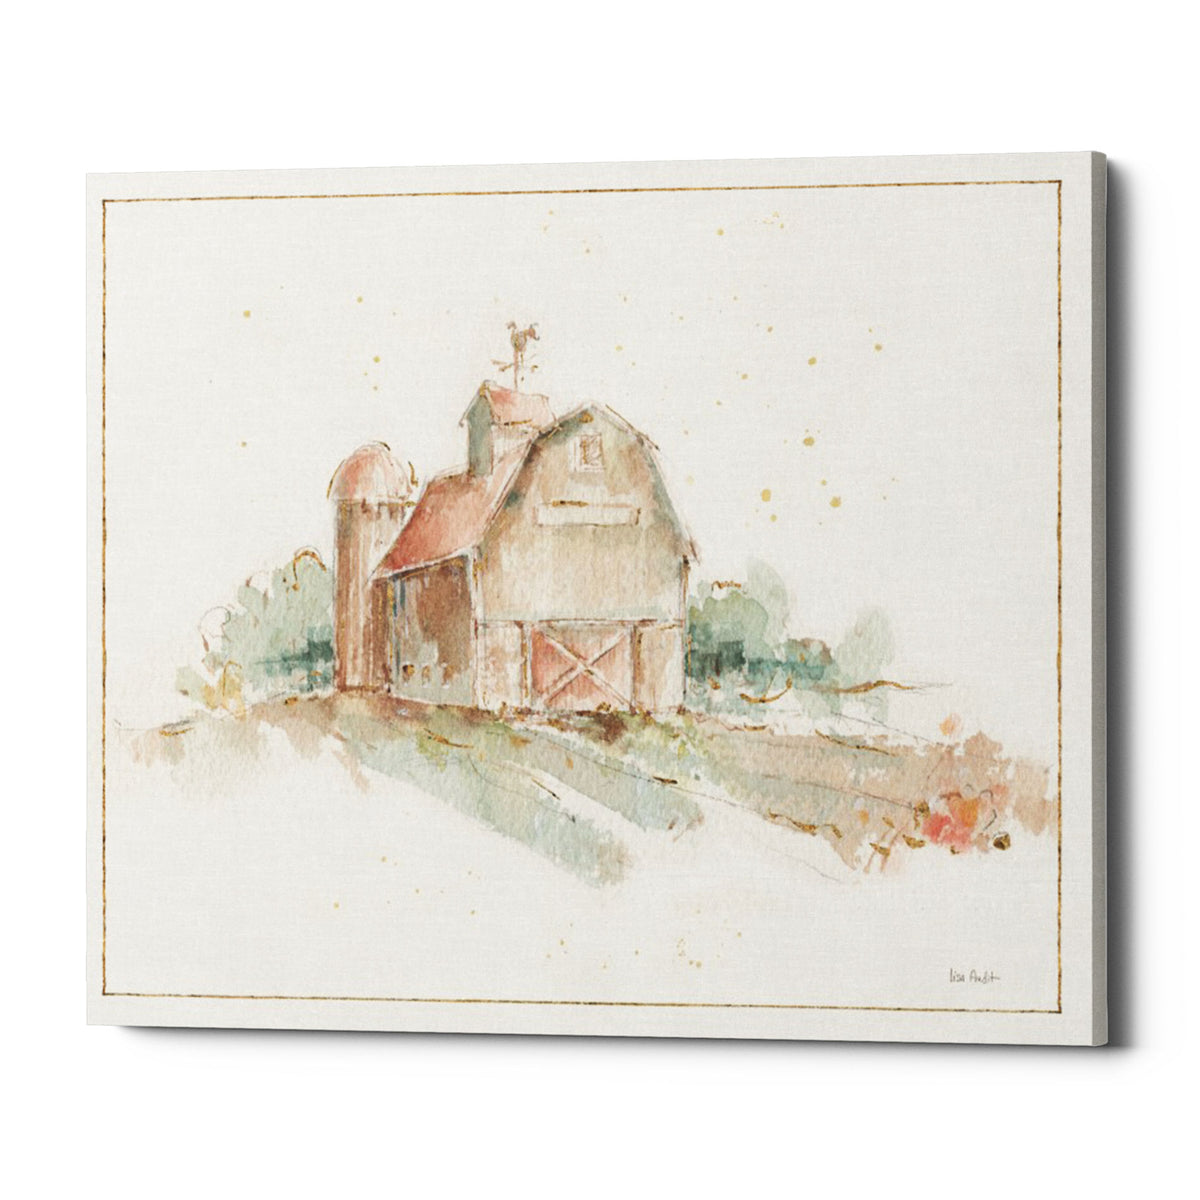 "Epic Graffiti ""Farm Friends XV Barn"" by Lisa Audit, Giclee Canvas Wall Art, 20""x24"""